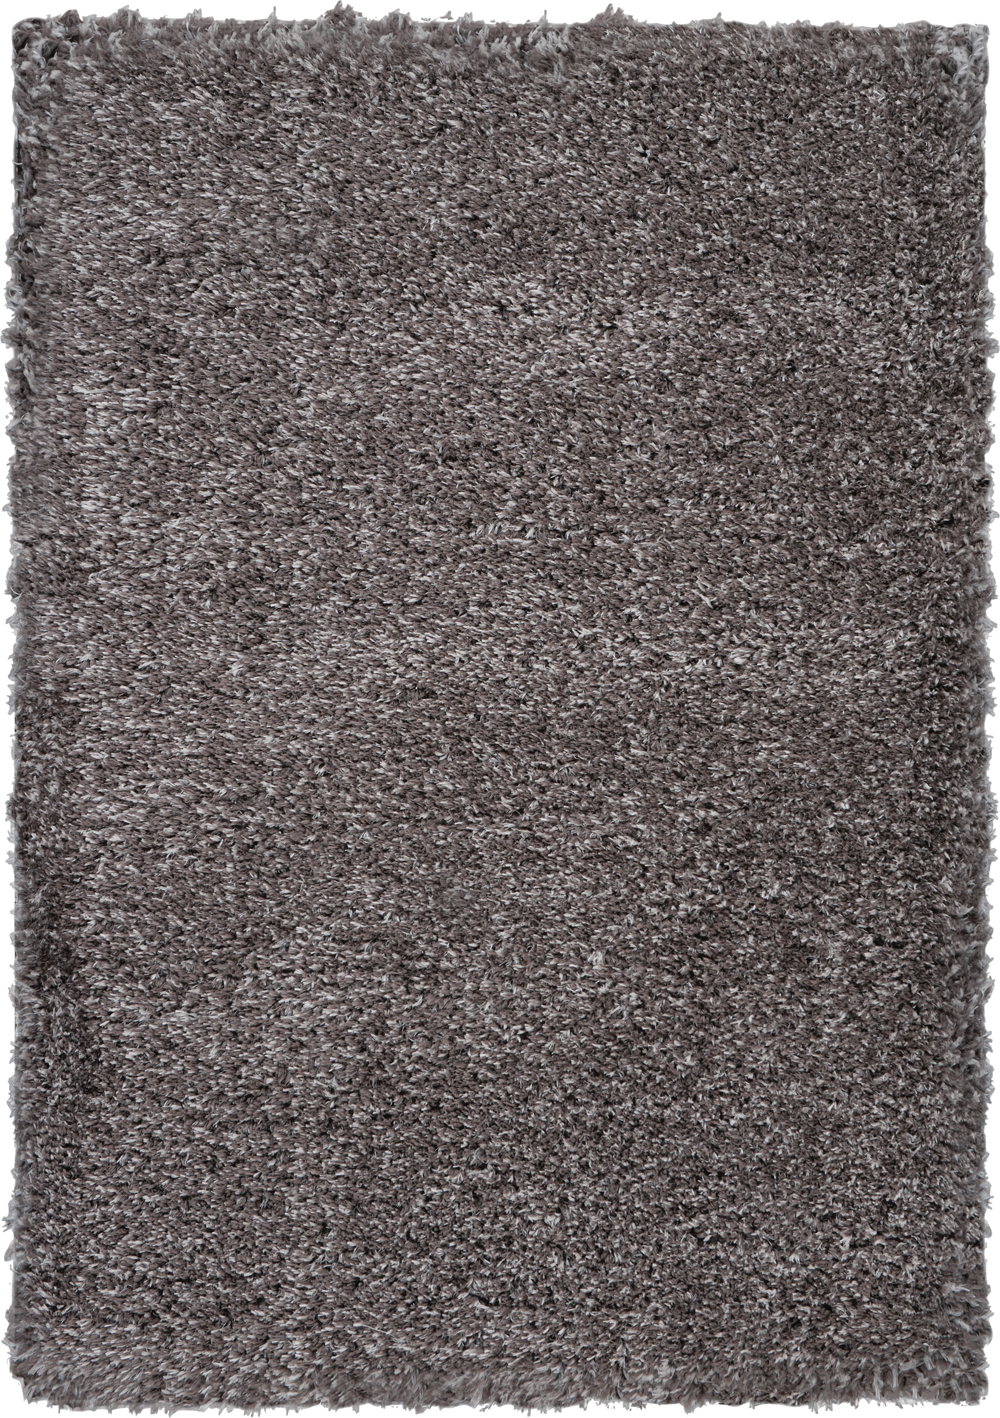 Nourison Luxe Shag LXS01 Charcoal Rug